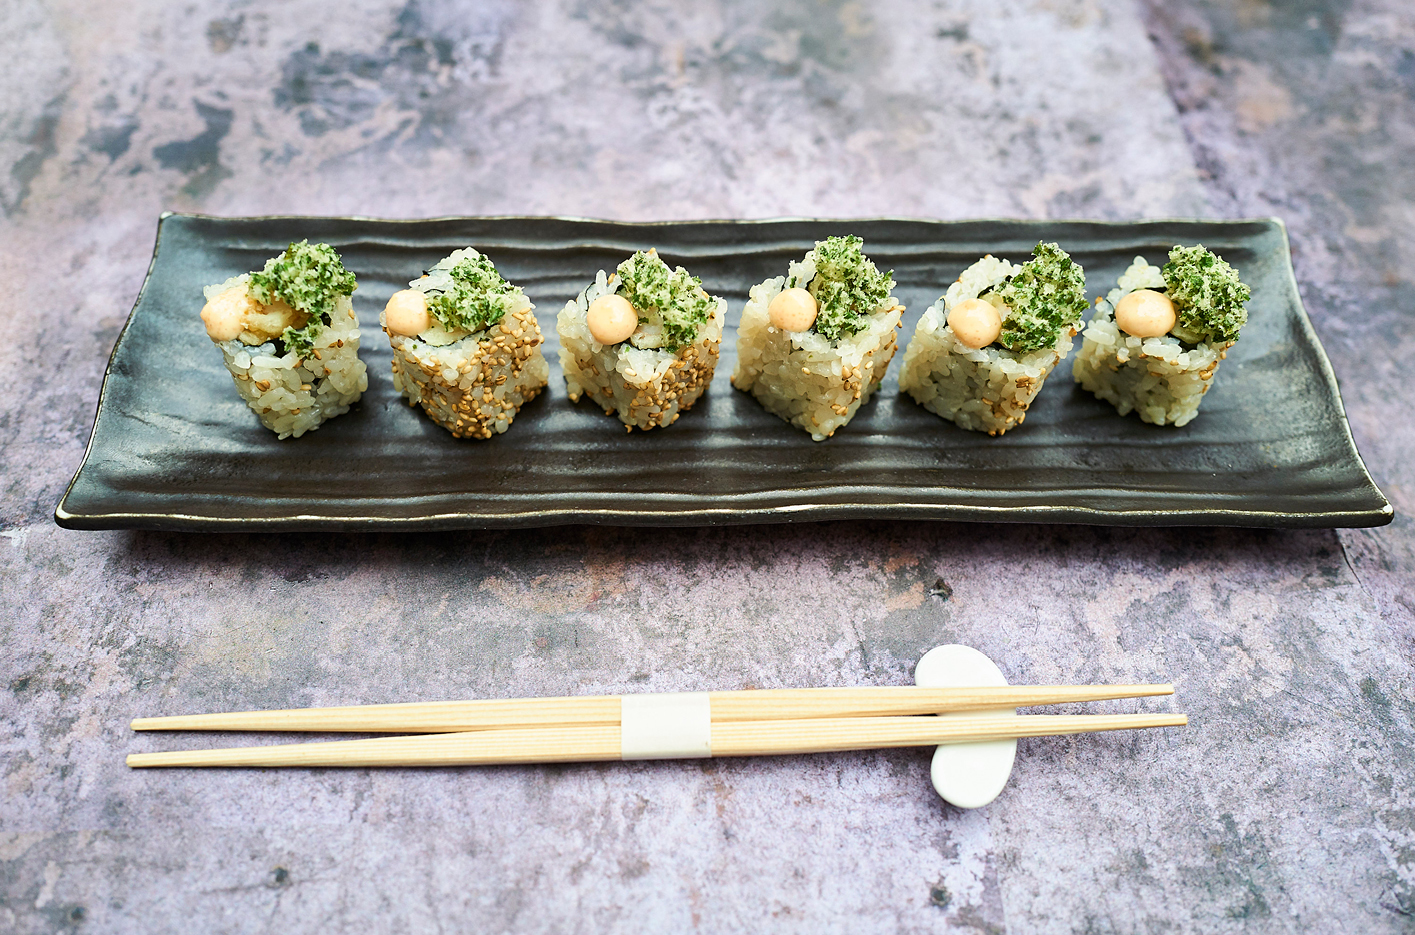 Dinings SW3 is going to start offering sushi masterclasses for patrons who want to expand their culinary skills